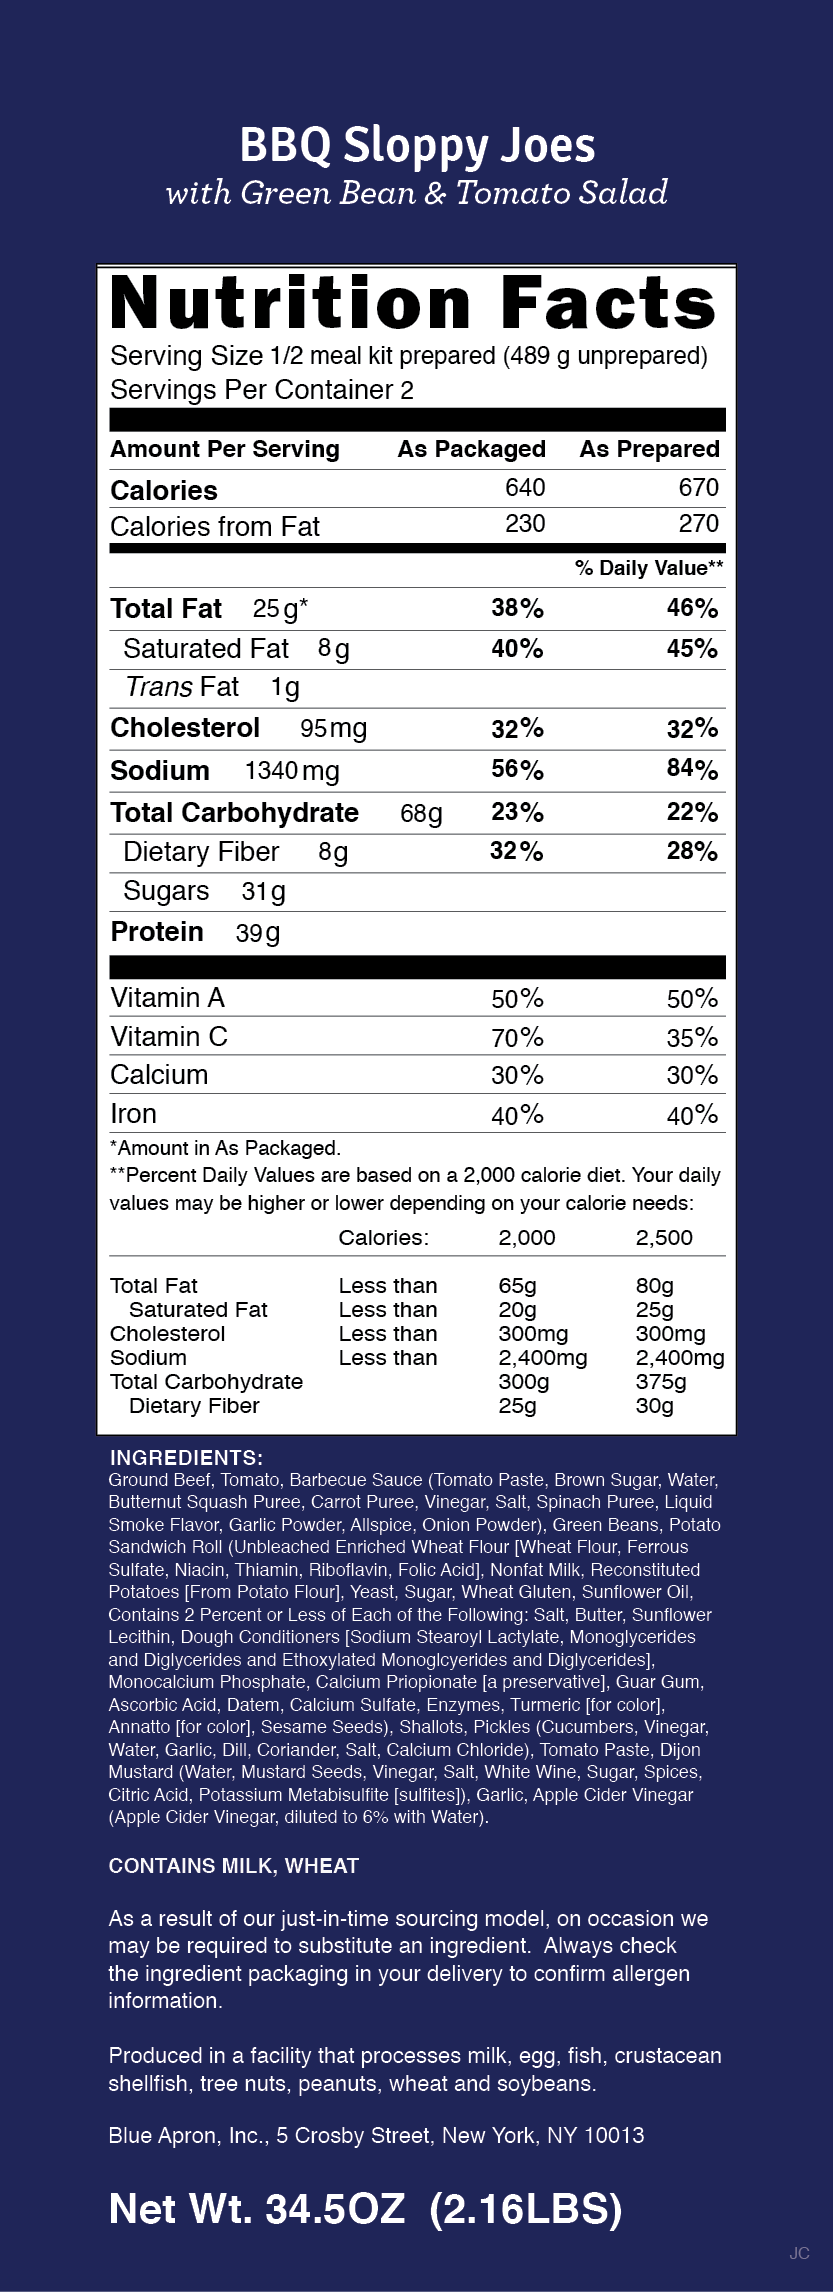 Blue apron quality auditor - Nutrition Label